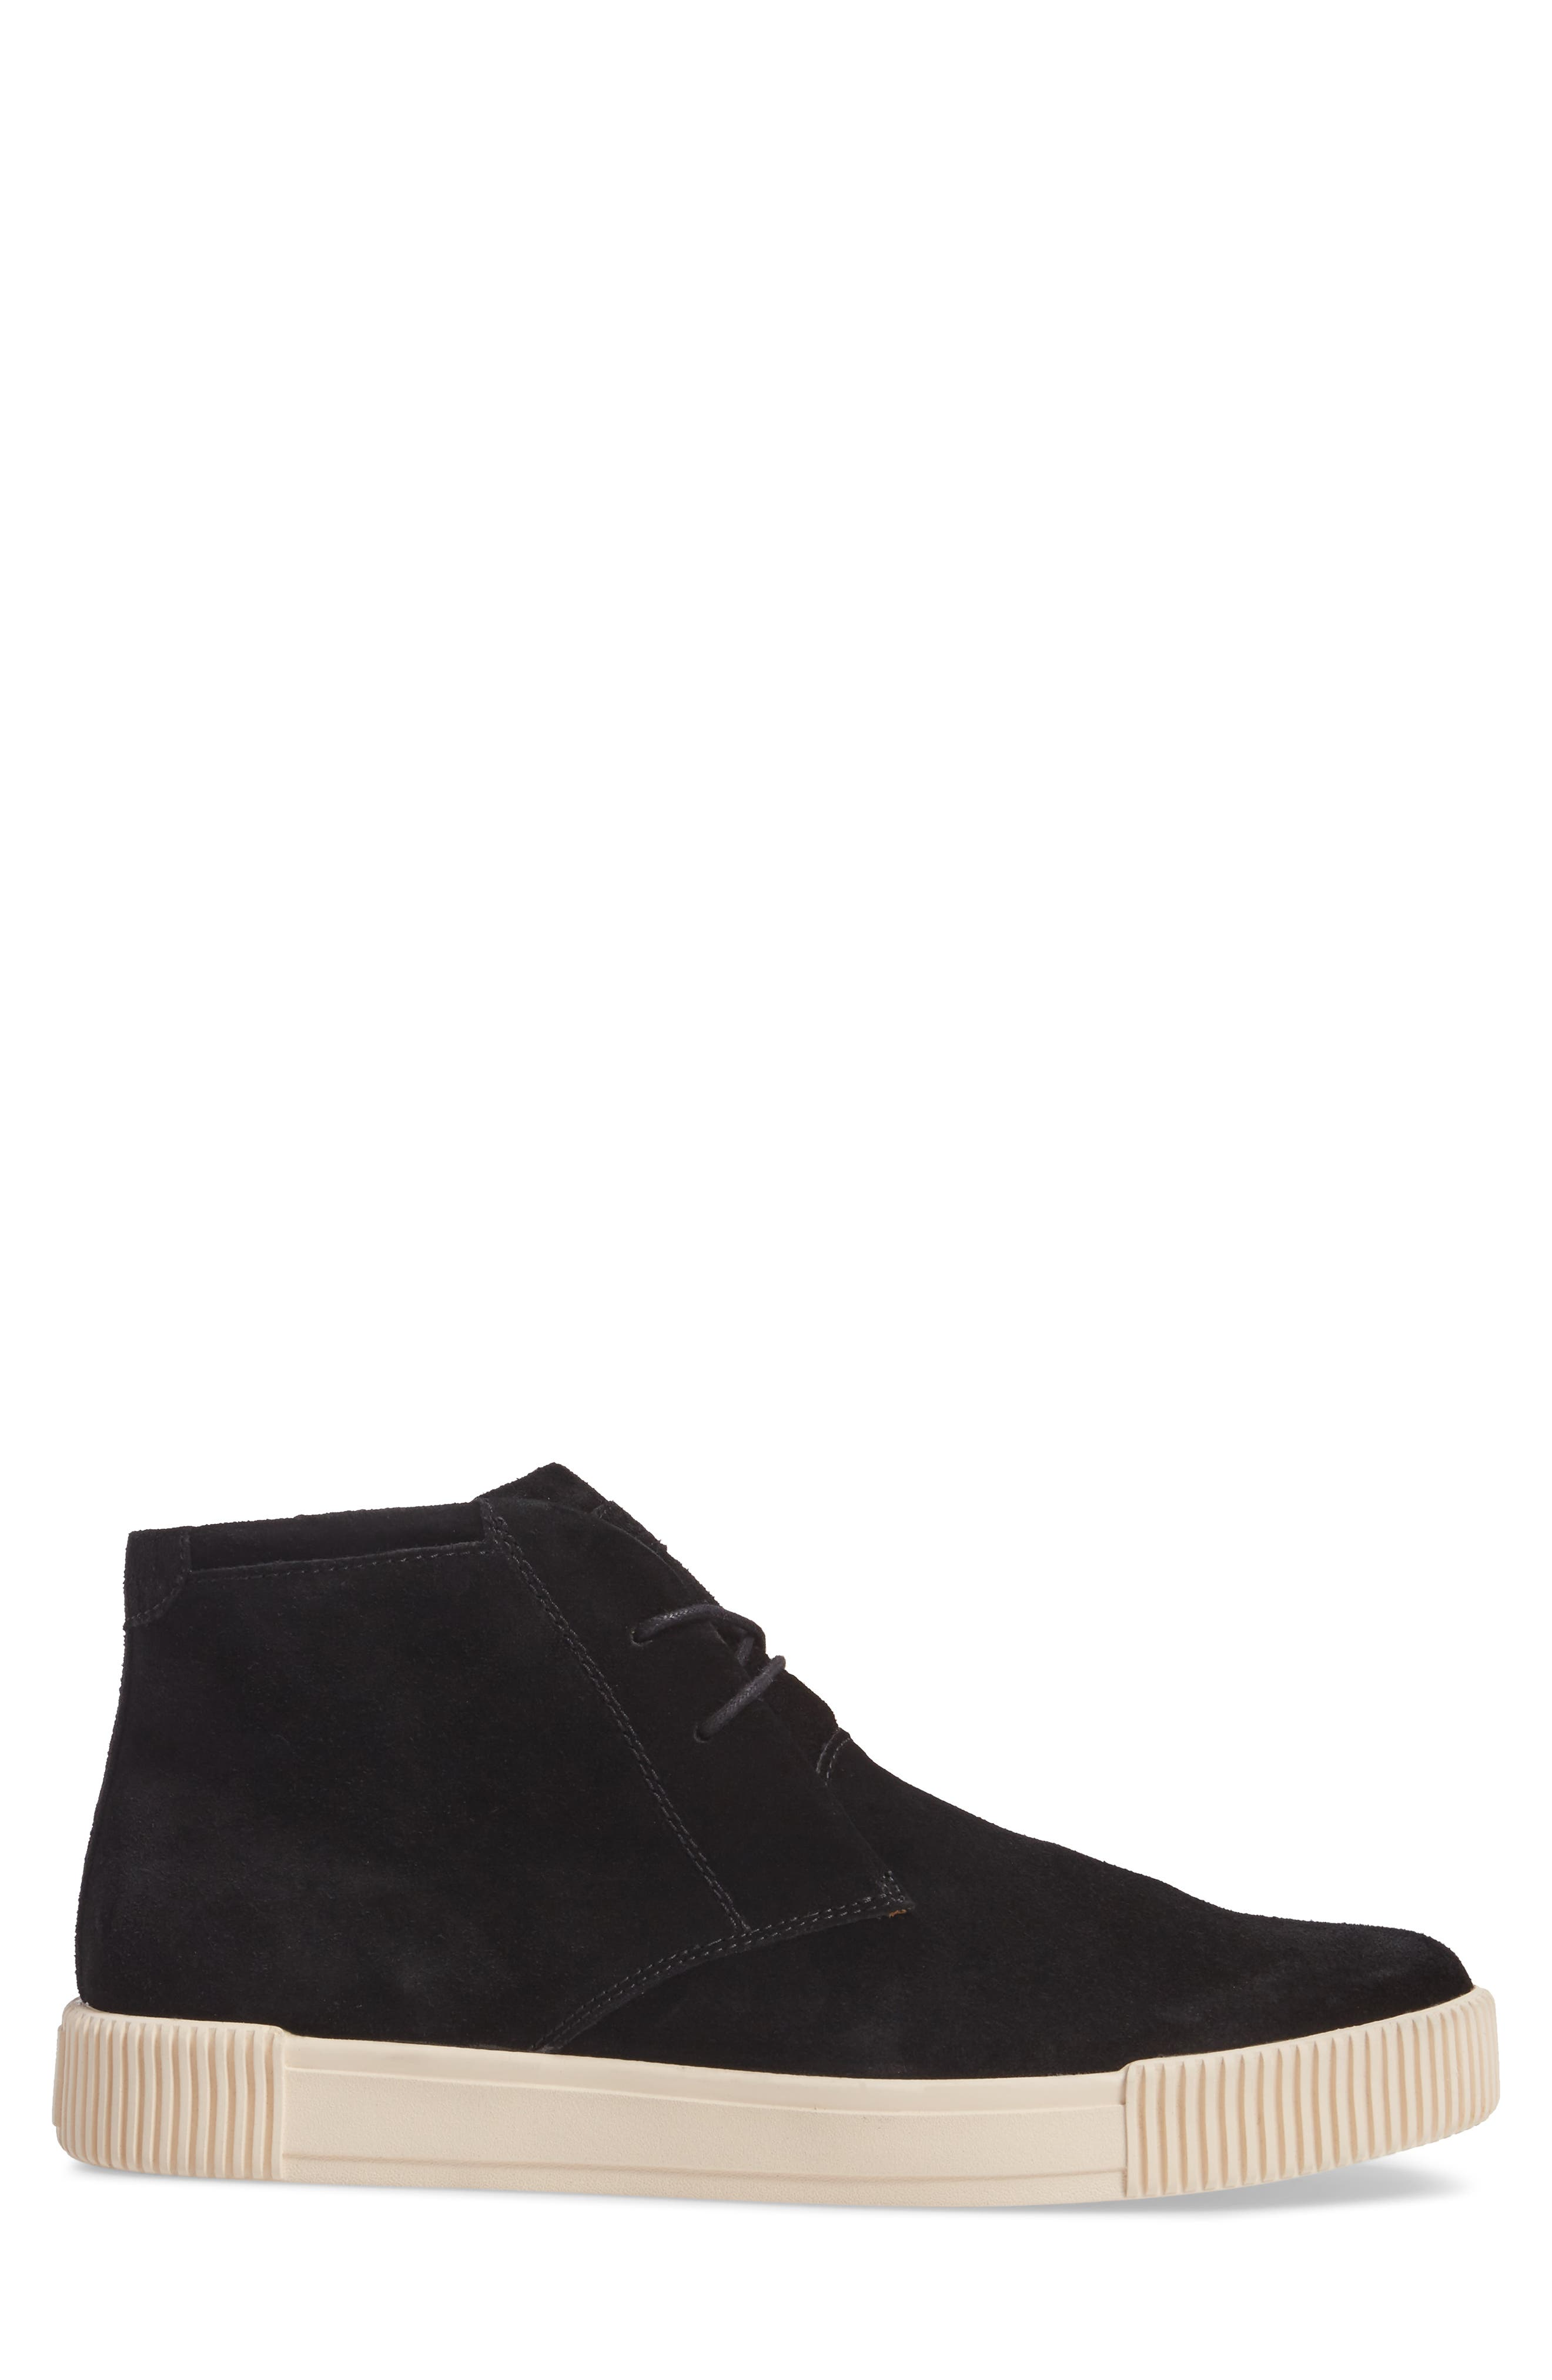 Lyons Chukka Sneaker,                             Alternate thumbnail 3, color,                             BLACK SUEDE